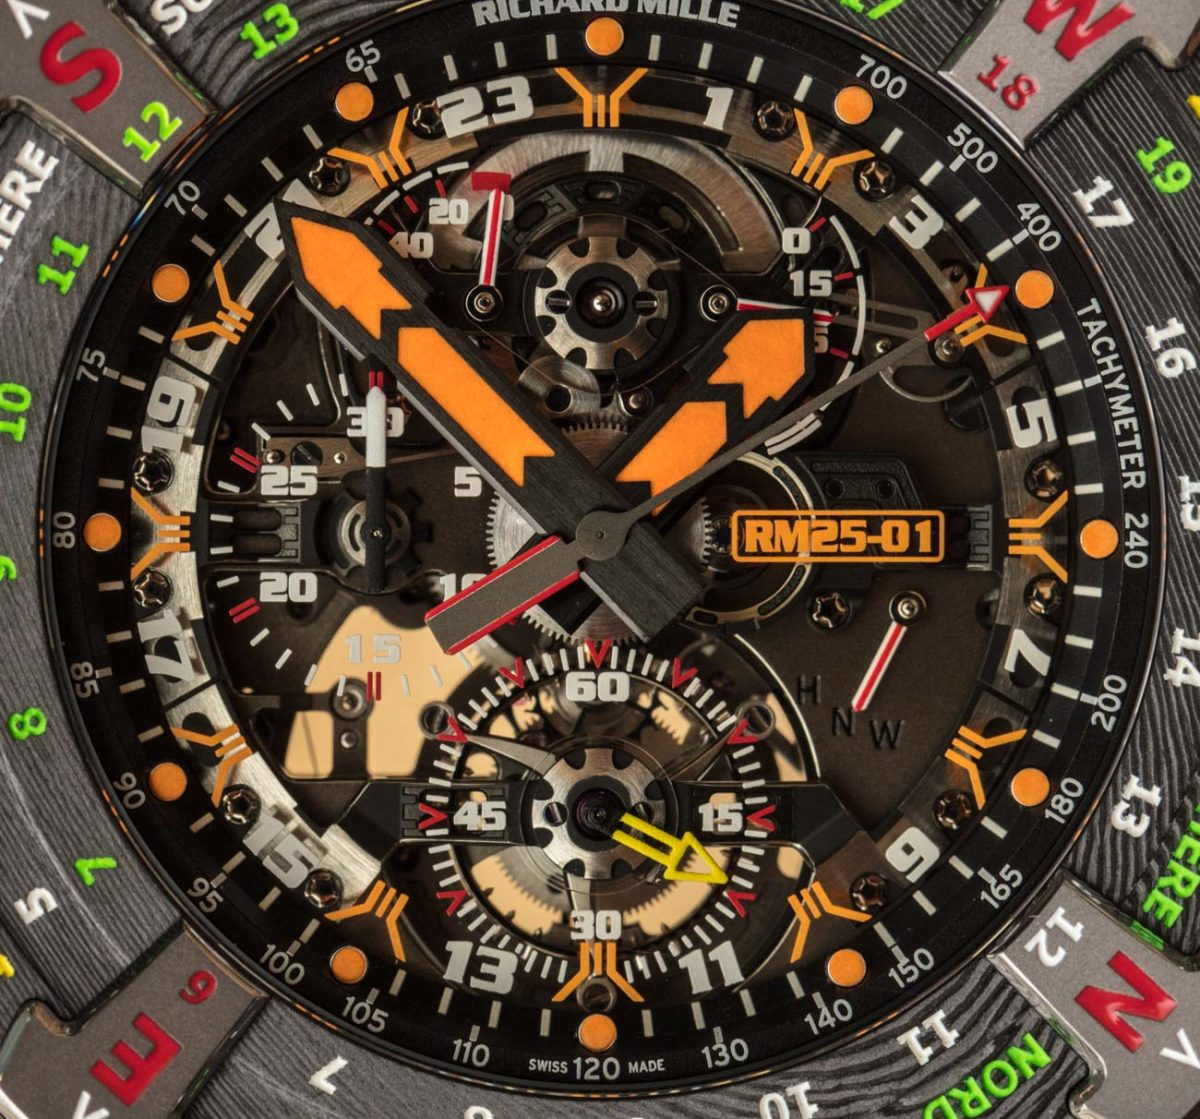 Top Richard Mille RM 25-01 Tourbillon Adventure Sylvester Stallone Can Be One Of The Wildest Replica Watches Of The Year